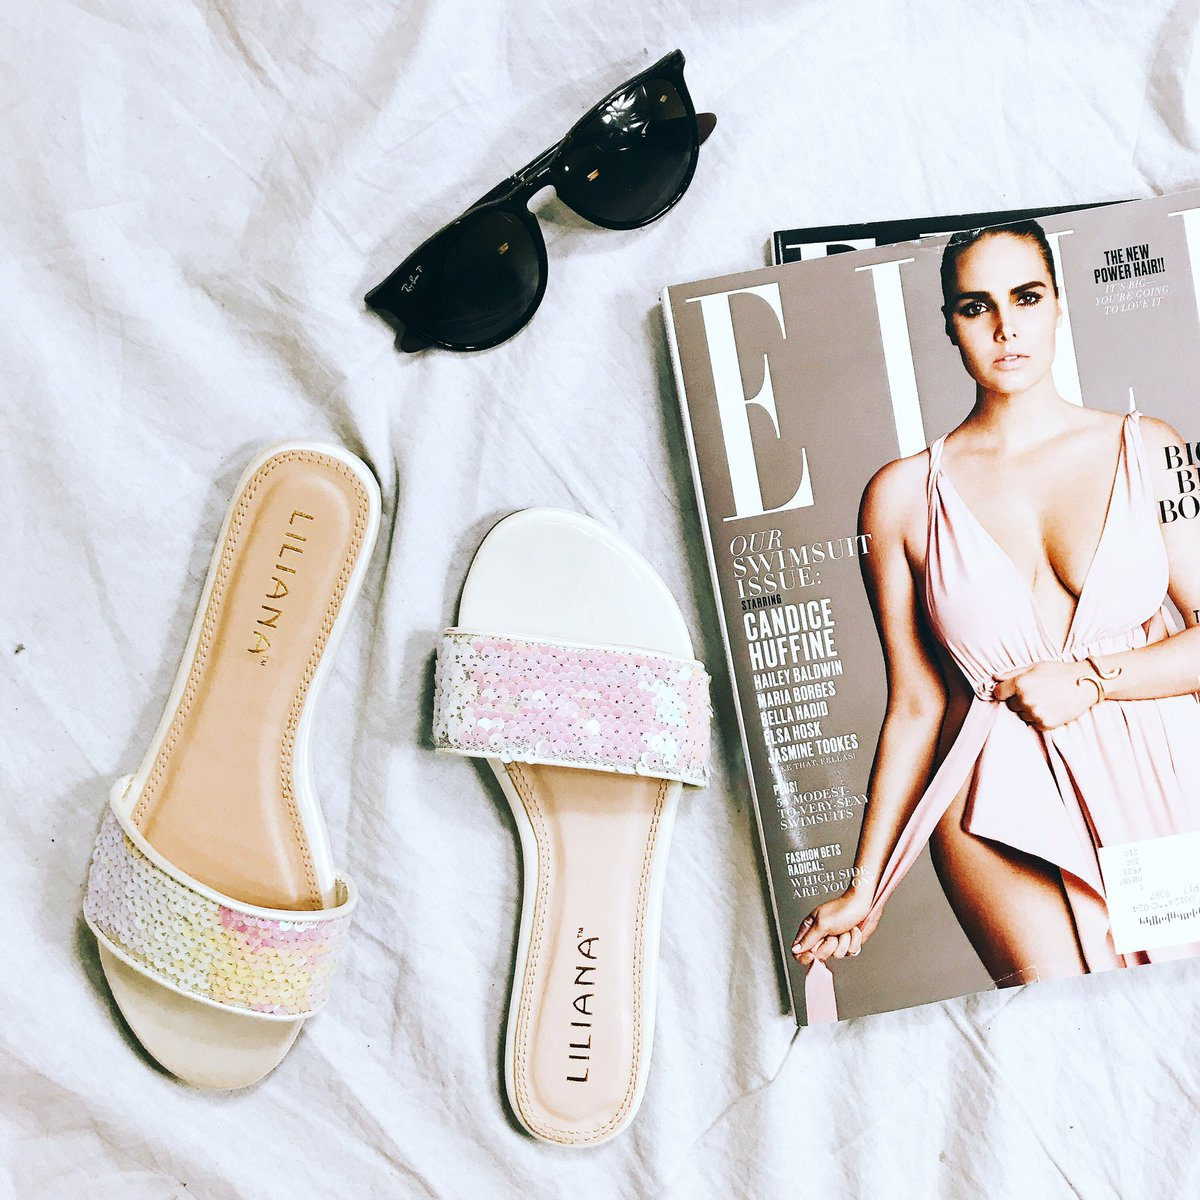 Already dreaming of the  weekend  style: dainty-3a #lilianafootwear #igers #instagold #wiw #ootd #wiwt #summerfashion #shoelover<br>http://pic.twitter.com/8Rb01tC9s7